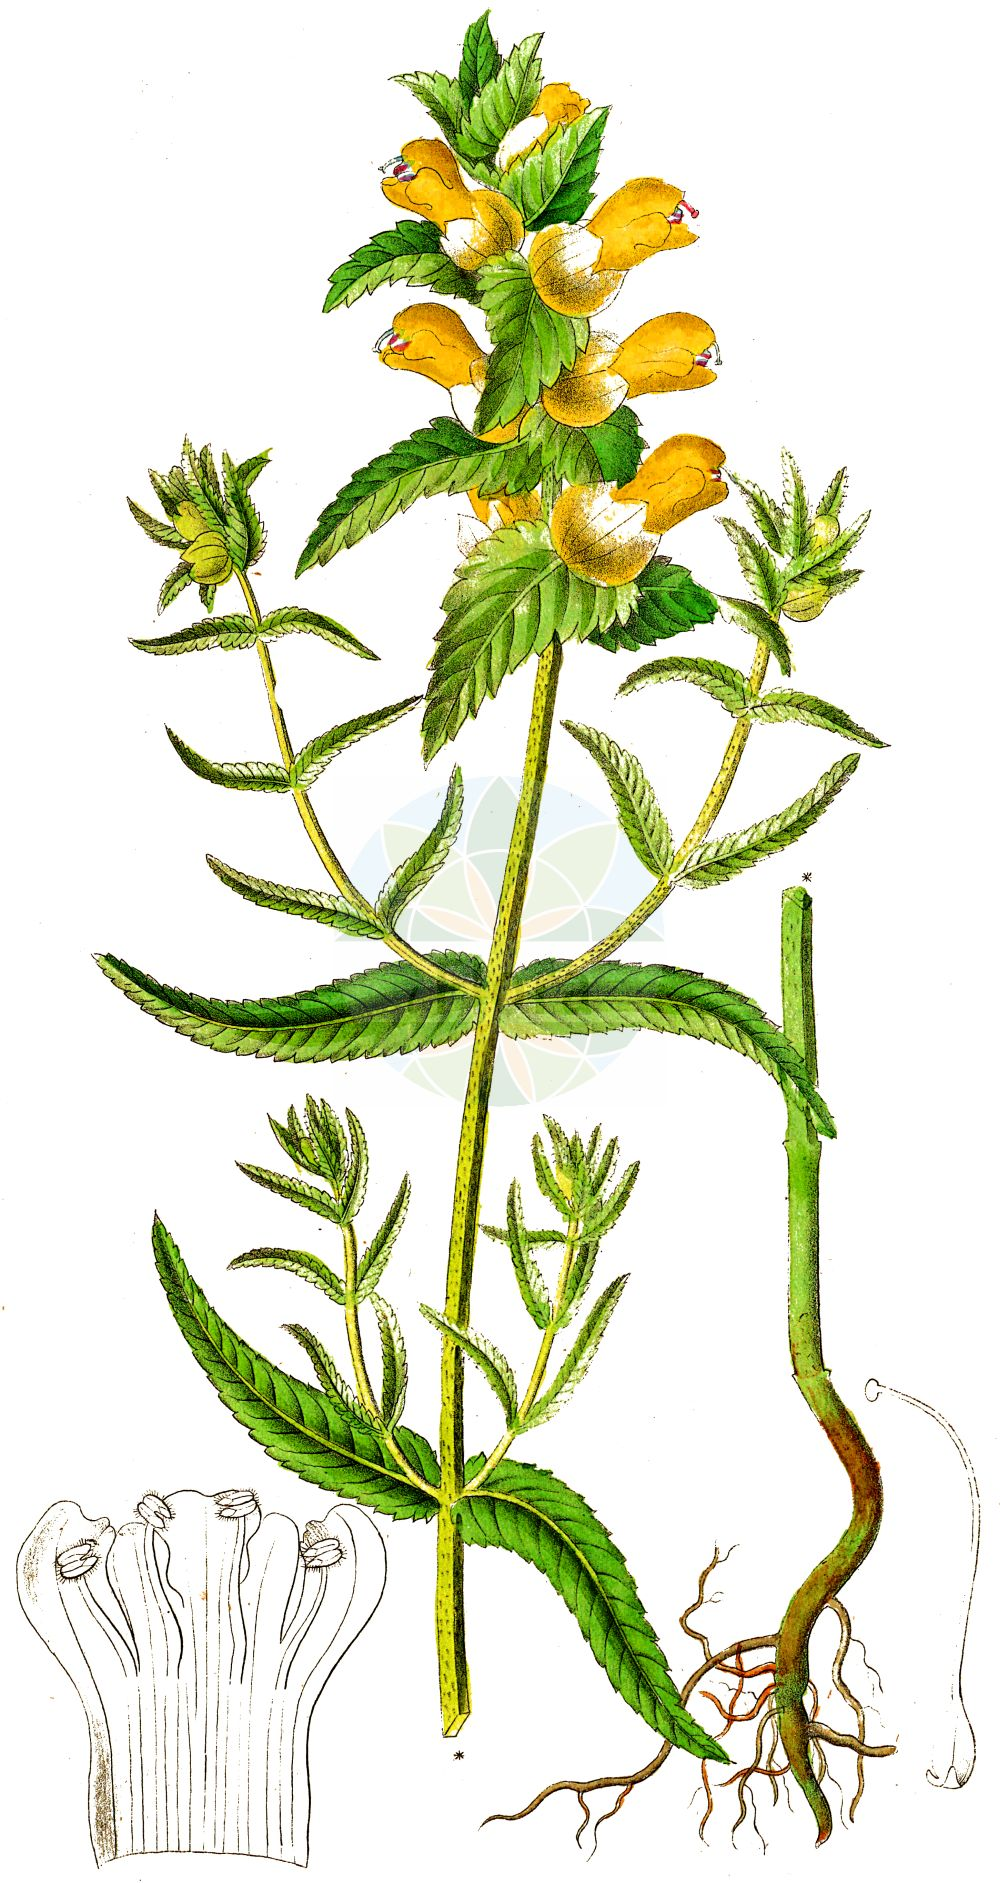 Historische Abbildung von Rhinanthus angustifolius (Acker-Klappertopf - Late-flowering Yellow Rattle). Das Bild zeigt Blatt, Bluete, Frucht und Same. ---- Historical Drawing of Rhinanthus angustifolius (Acker-Klappertopf - Late-flowering Yellow Rattle).The image is showing leaf, flower, fruit and seed.(Rhinanthus angustifolius,Acker-Klappertopf,Late-flowering Yellow Rattle,Alectorolophus angustifolius,Alectorolophus glaber,Alectorolophus major,Alectorolophus major Rchb. subsp.,Alectorolophus serotinus,Rhinanthus angustifolius,Rhinanthus glaber,Rhinanthus paludosus,Rhinanthus serotinus,Rhinanthus serotinus subsp. polycladus,Acker-Klappertopf,Grosser Klappertopf,Late-flowering Yellow Rattle,Greater Yellow Rattle,Narrow-leaved Yellow Rattle,Southern Yellow Rattle,Rhinanthus,Klappertopf,Yellow Rattle,Orobanchaceae,Sommerwurzgewaechse,Broomrape family,Blatt,Bluete,Frucht,Same,leaf,flower,fruit,seed,Dietrich (1833-1844))